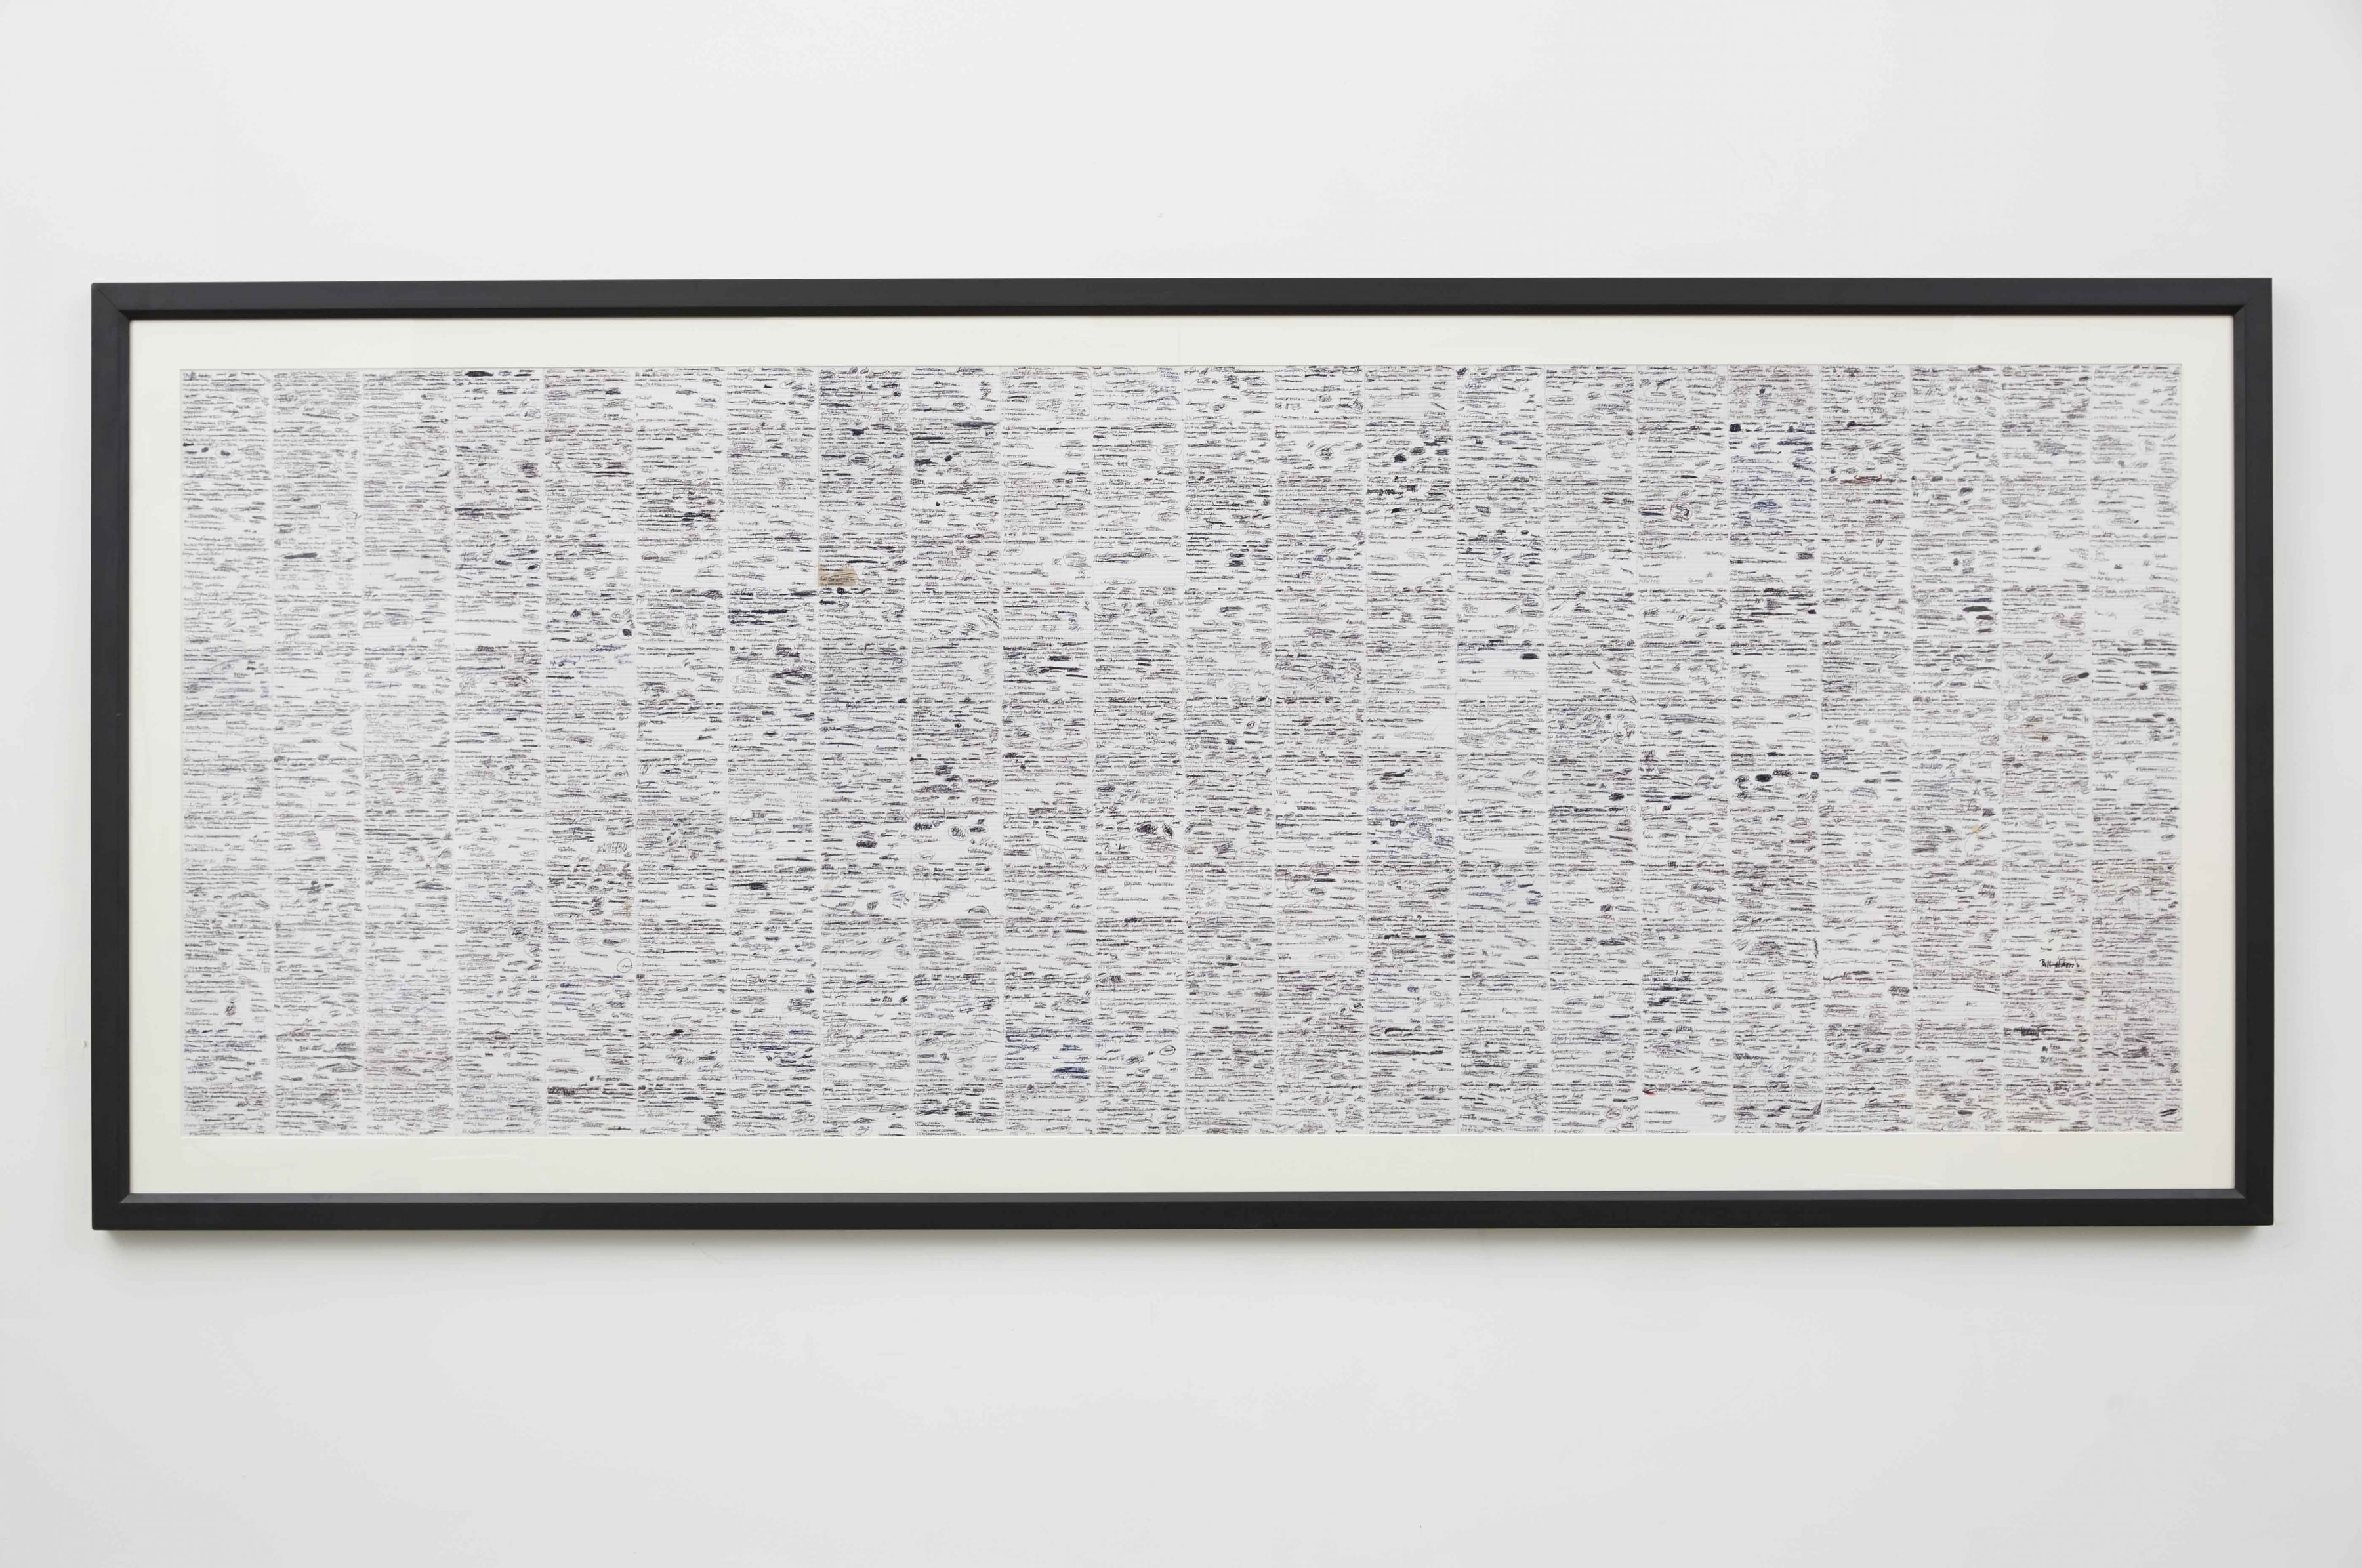 308 days, a digital print, by John Waters available for purchase